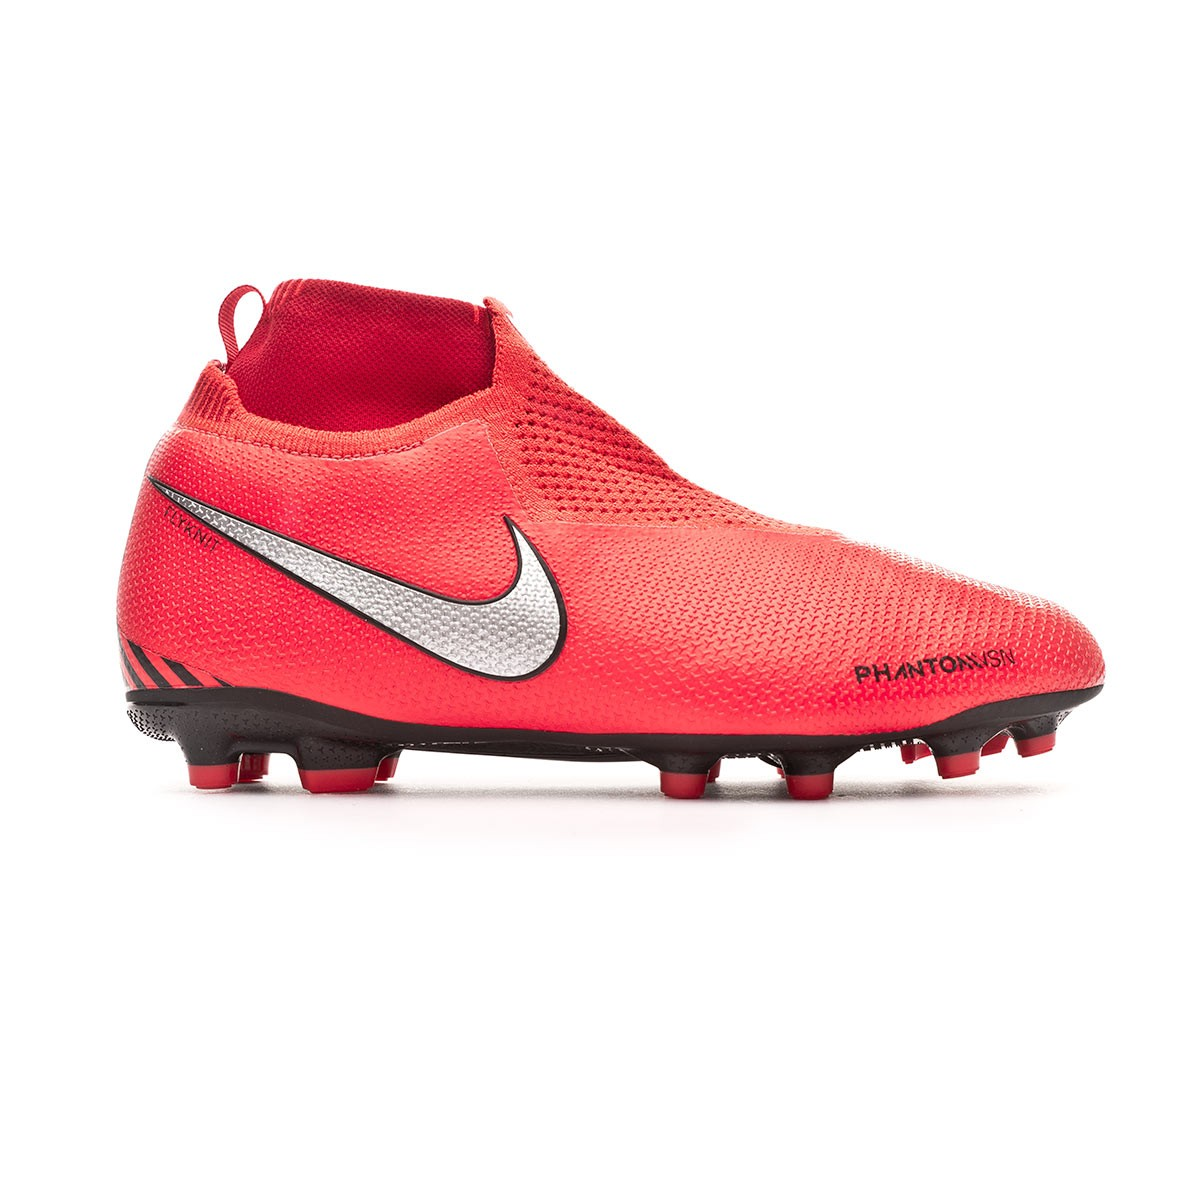 31bf7f45a Football Boots Nike Kids Phantom Vision Elite DF FG MG Bright  crimson-Metallic silver - Football store Fútbol Emotion